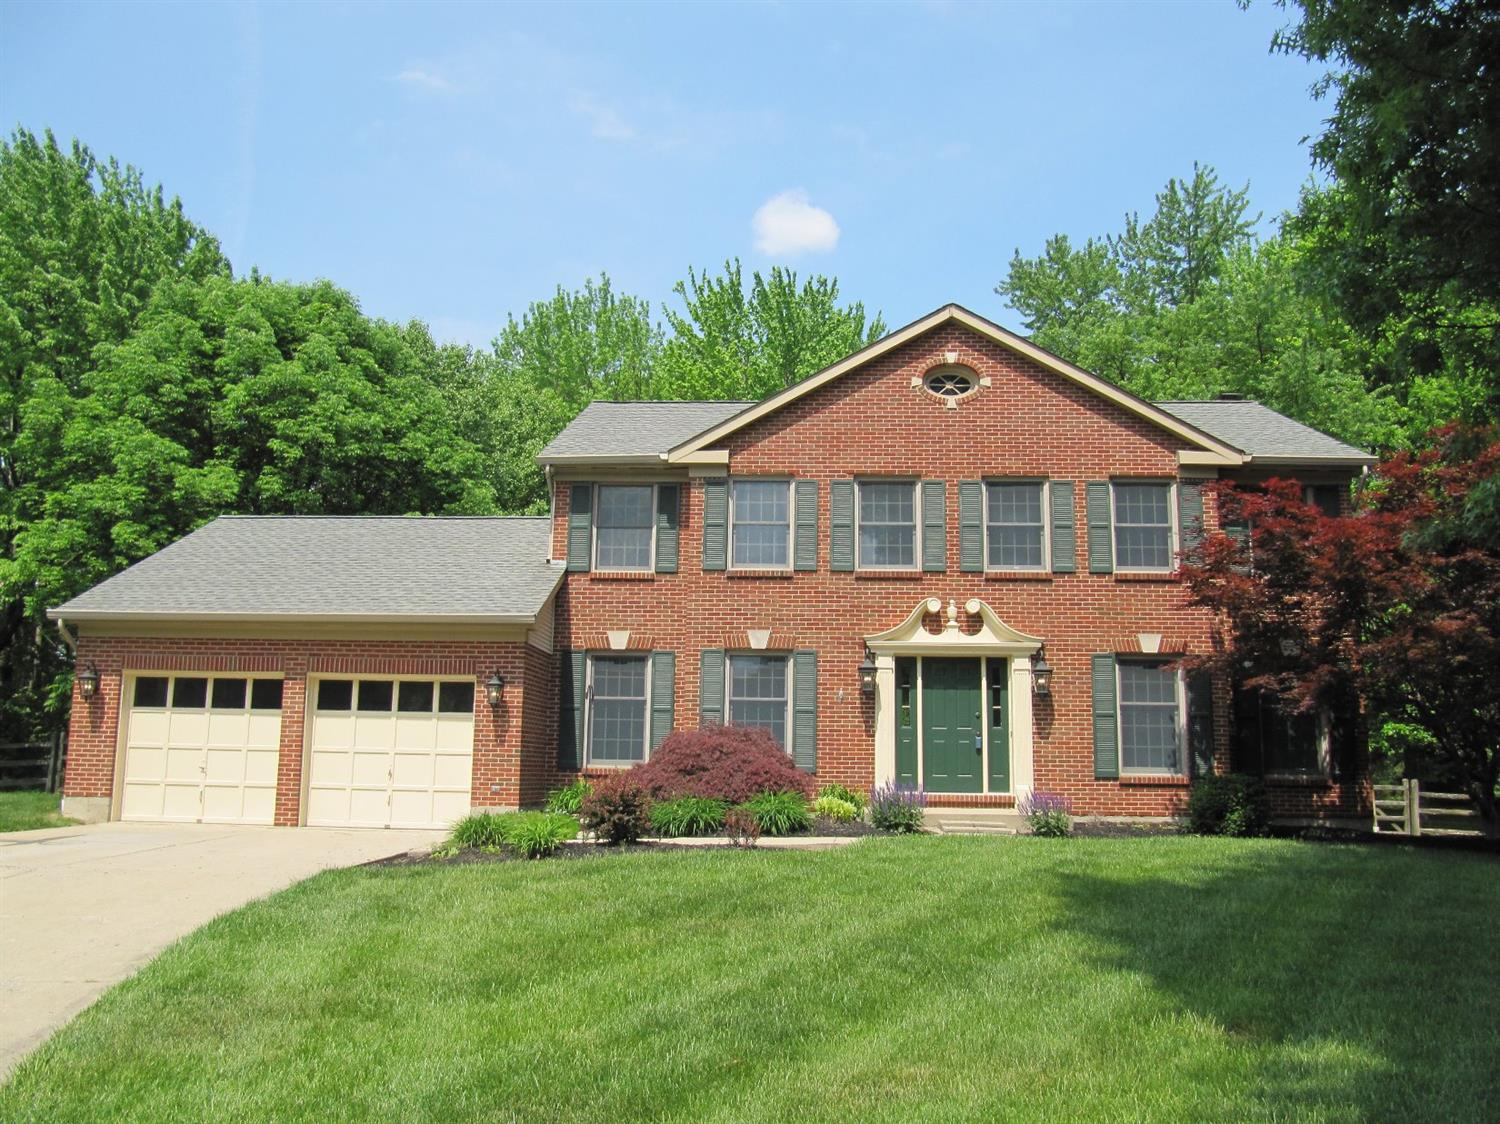 8104 Glenmill Ct Sycamore Twp., OH